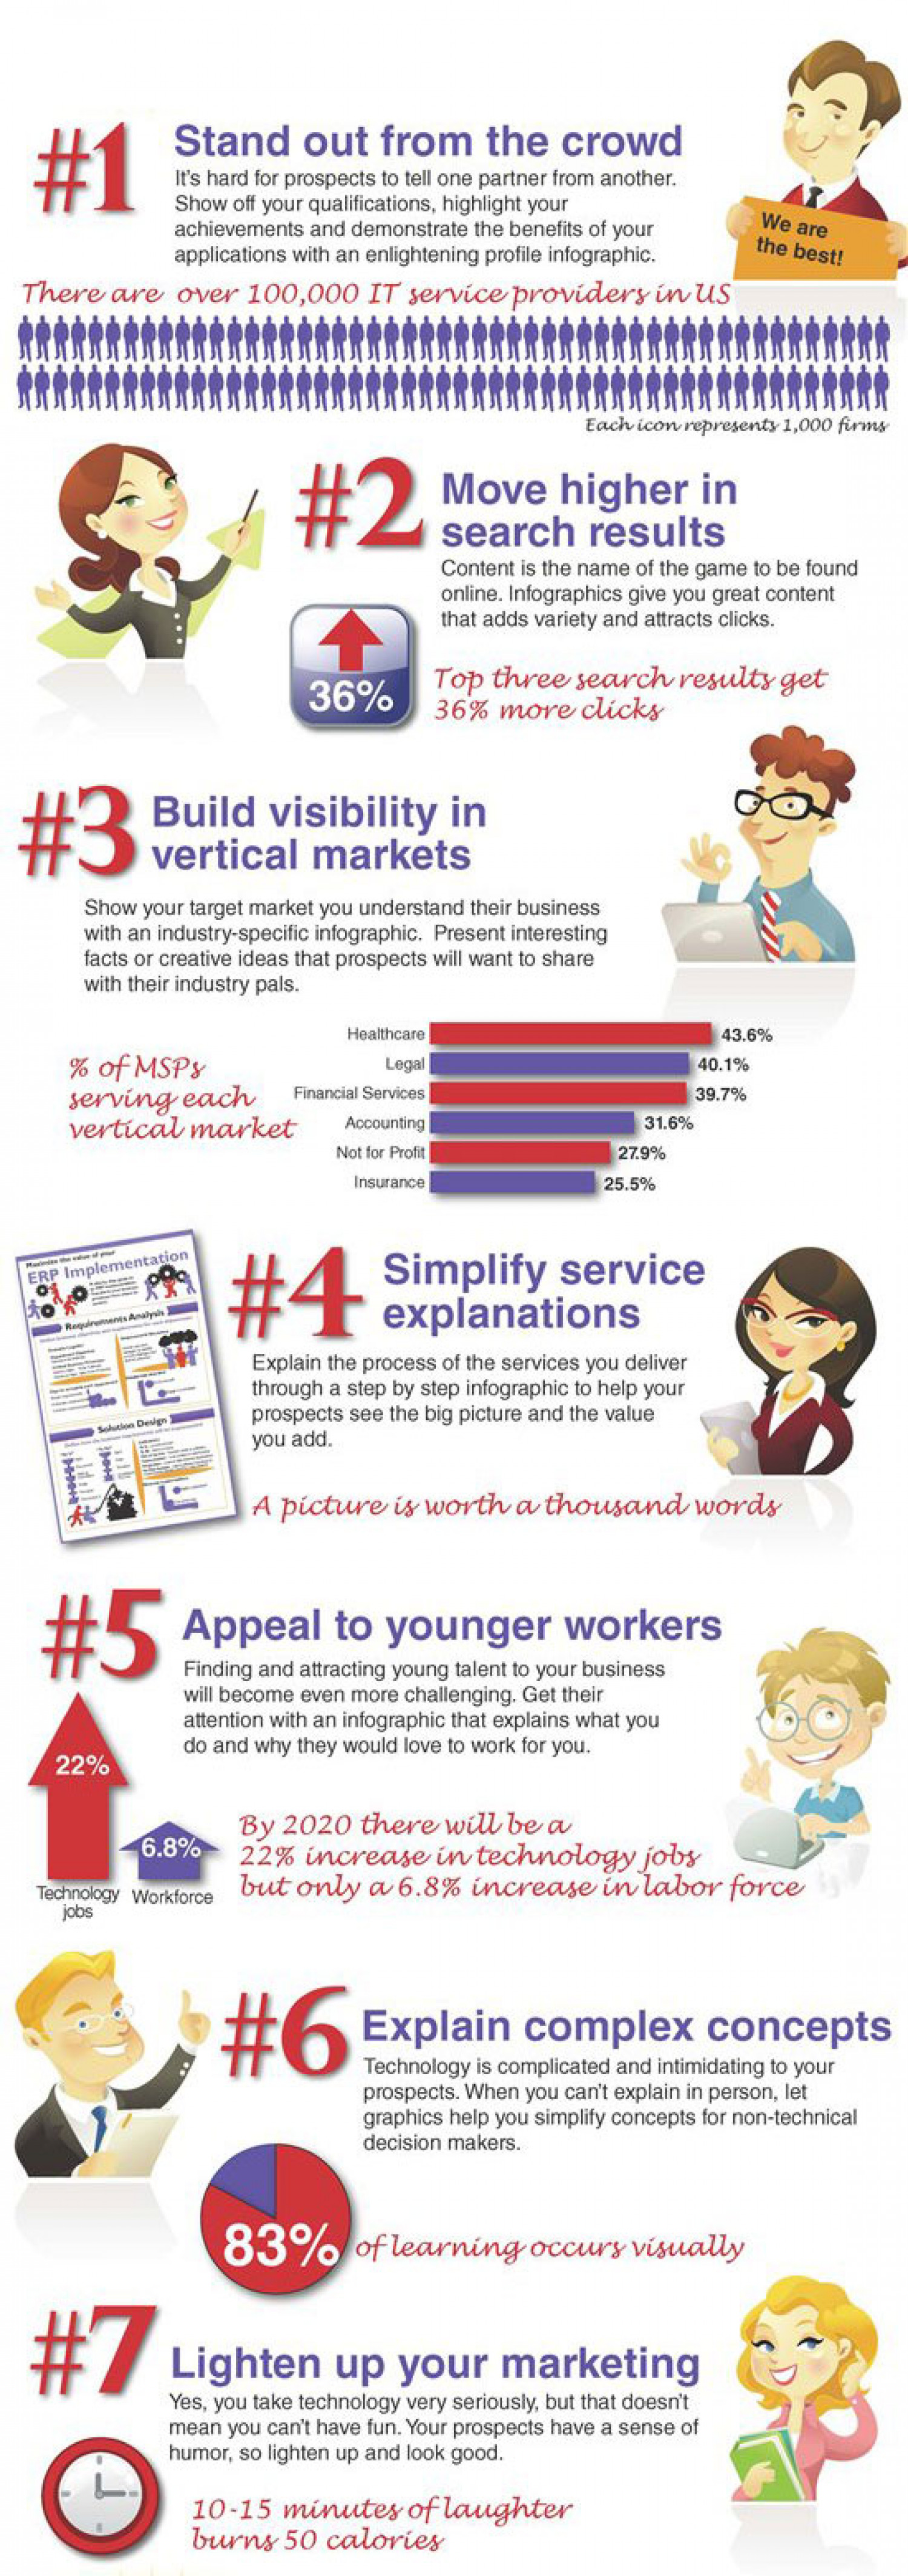 Ebriks-Best Images marketing in bussiness.  Infographic